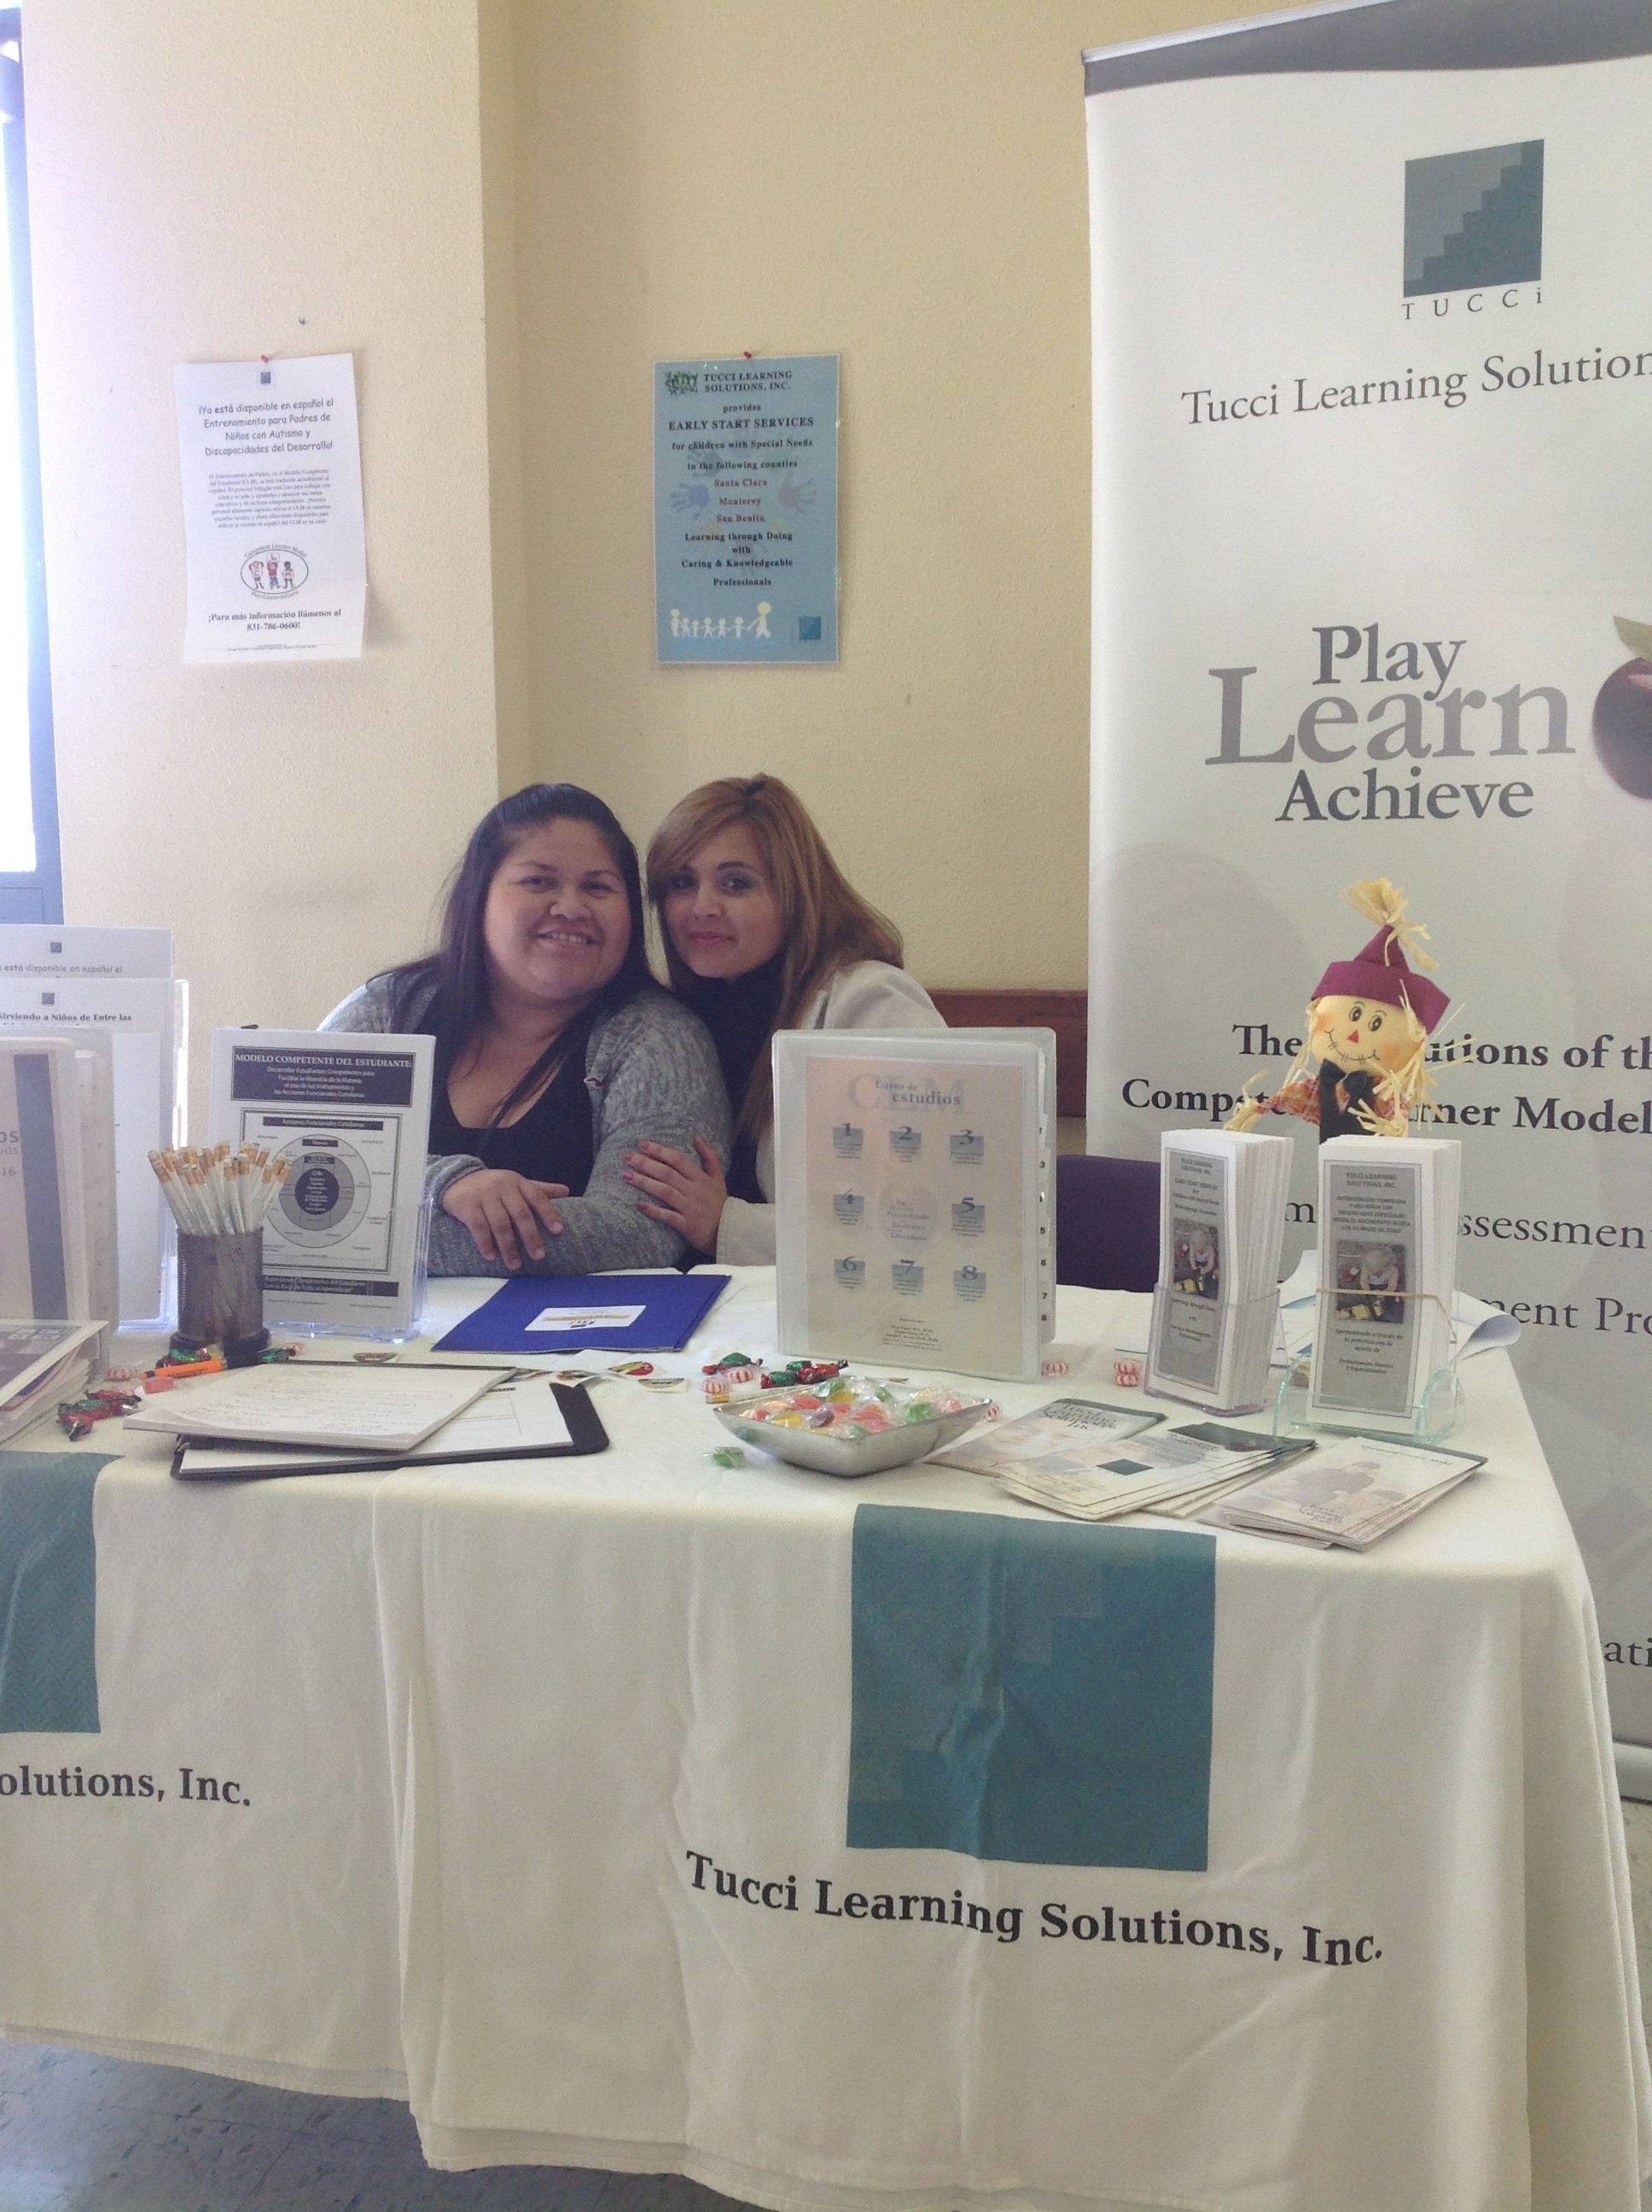 Cynthia Valencia and Denise Jaime at our table booth